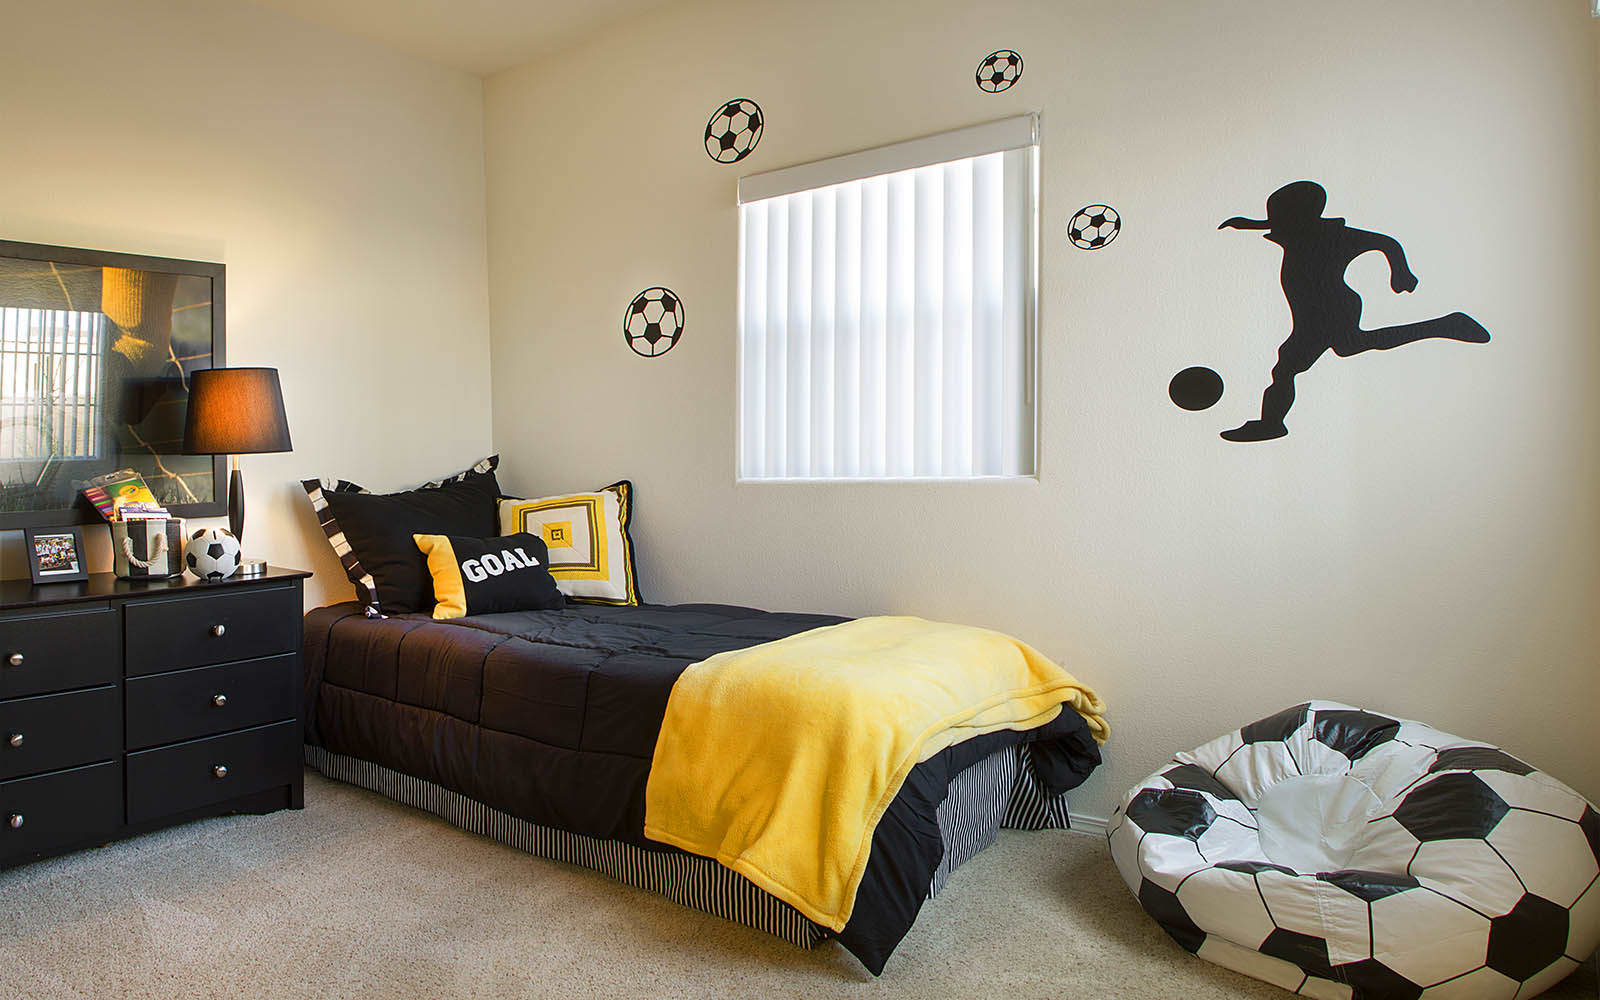 Kids Bedroom at Siena Apartments in Santa Maria, CA